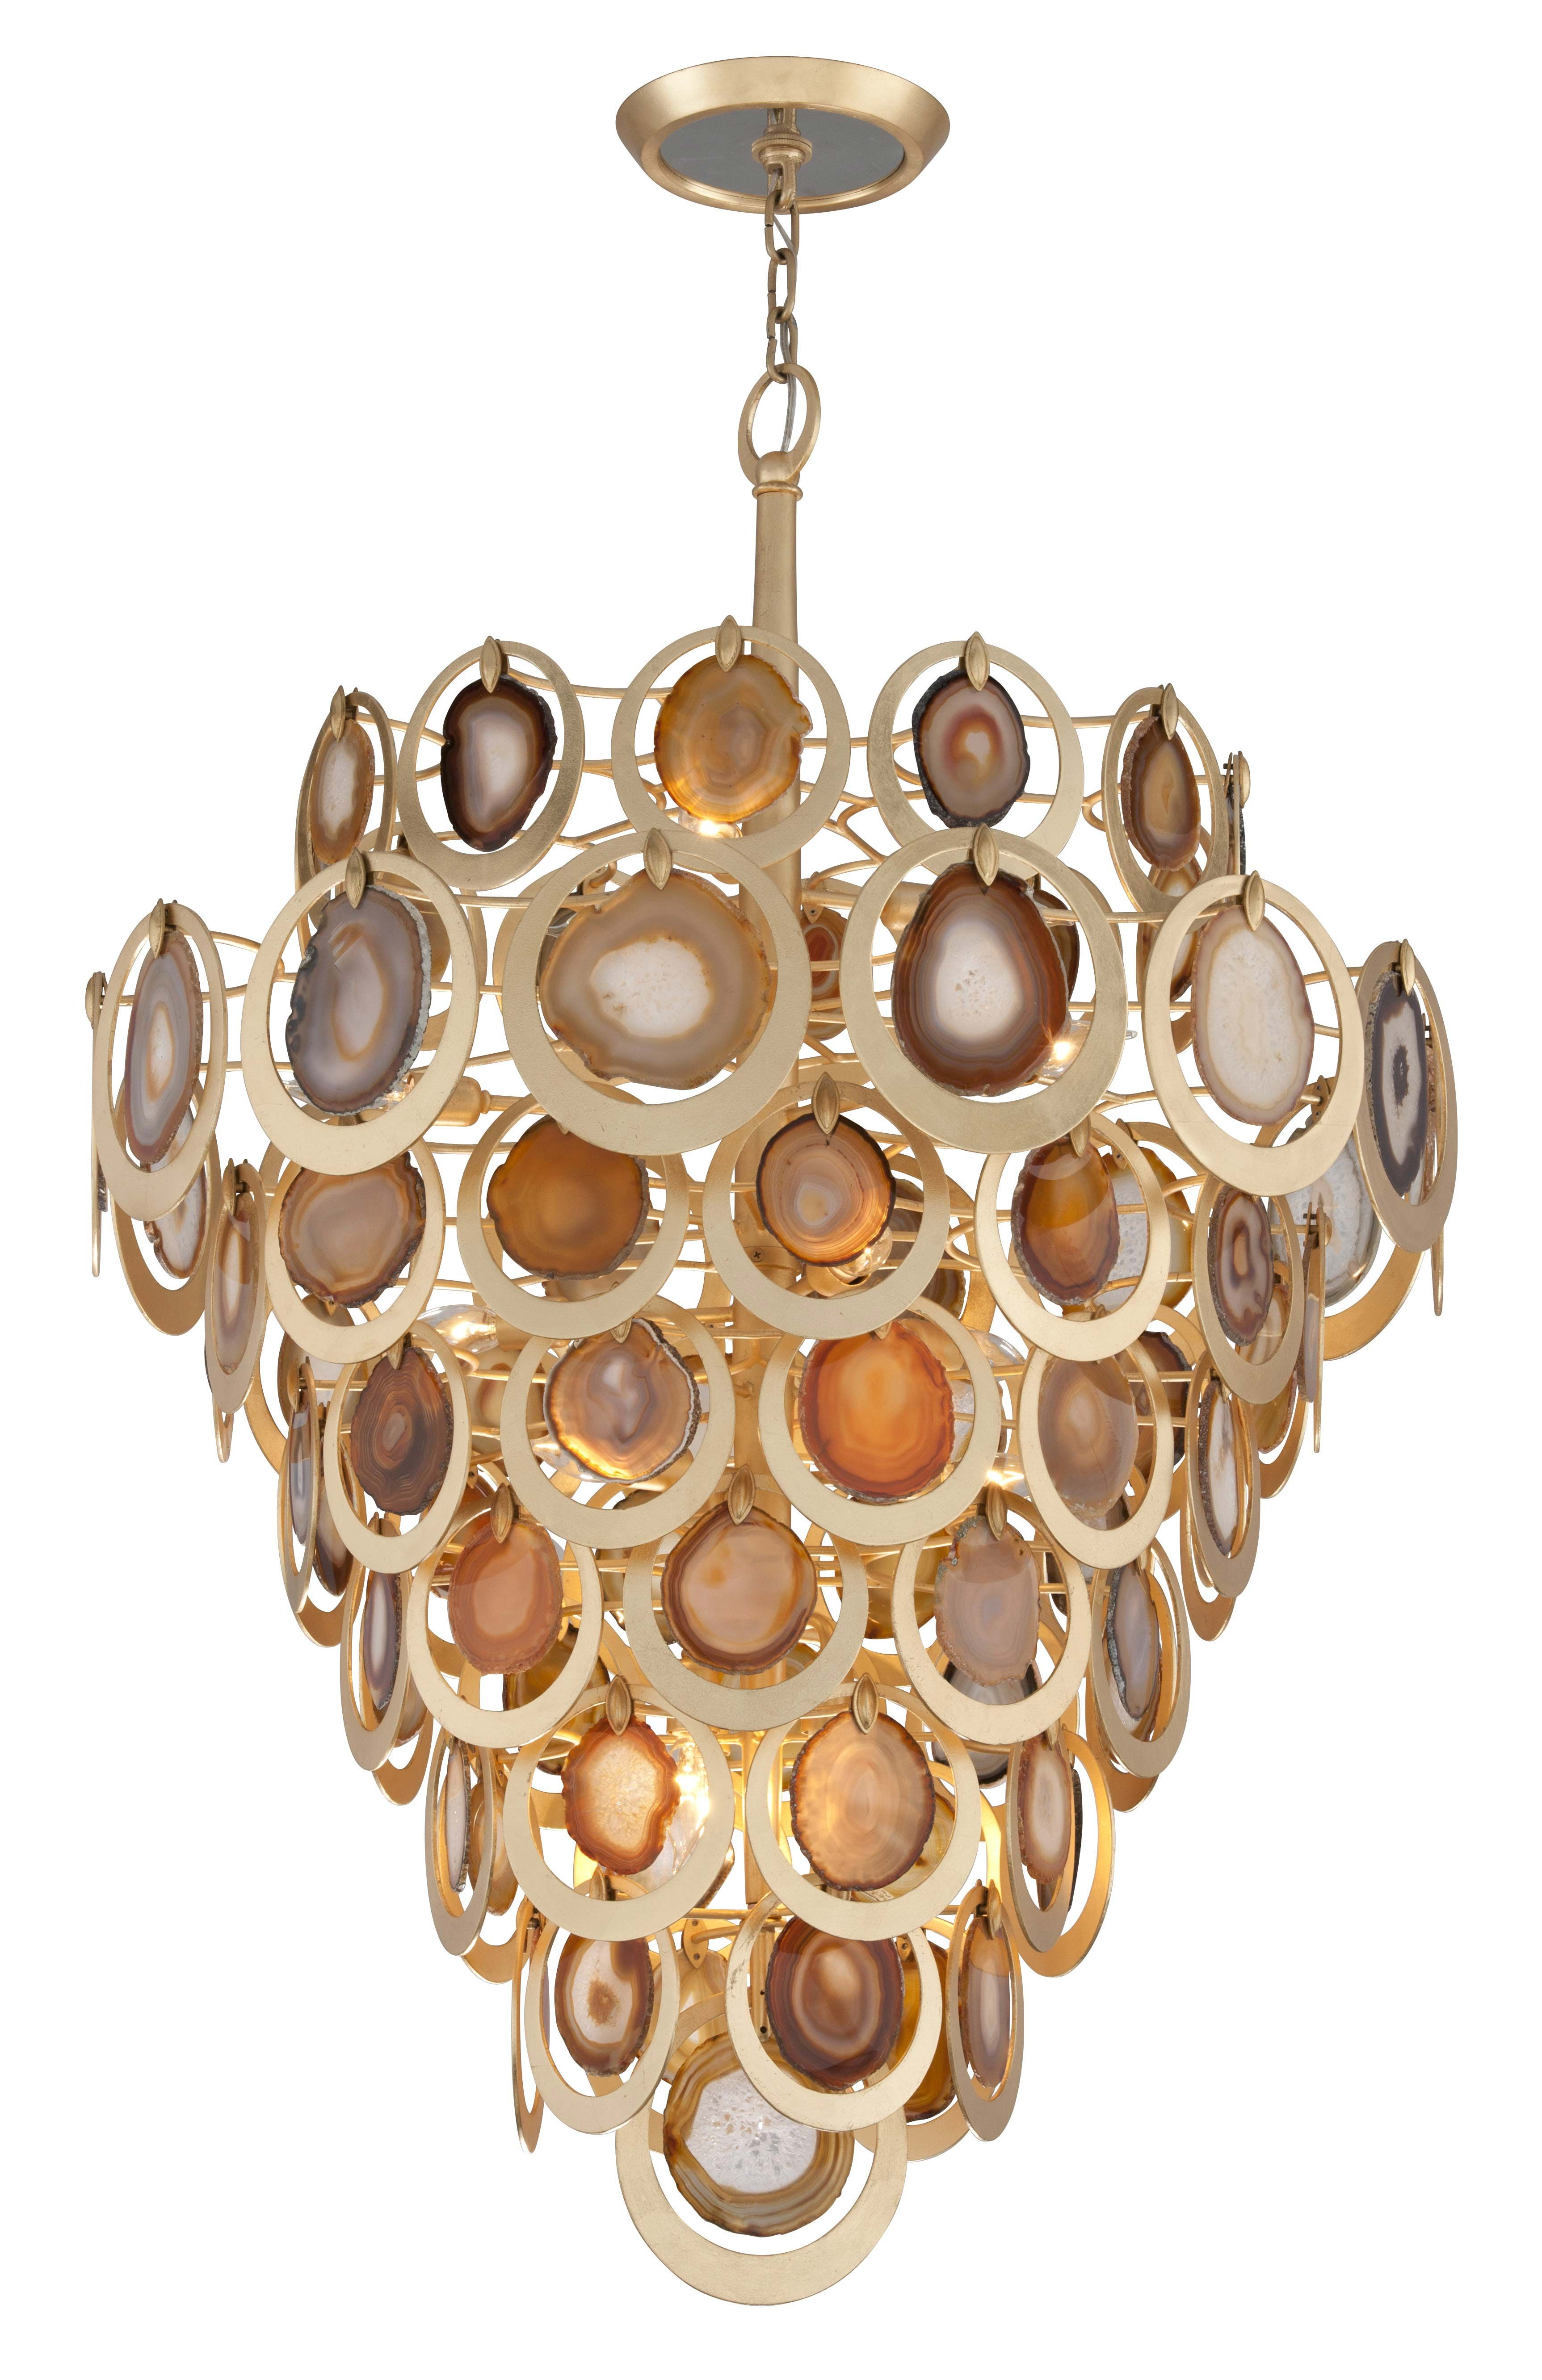 inspirational ceiling star effect moravian light pendant chrome gallery inspiration pallas of outdoor lamp